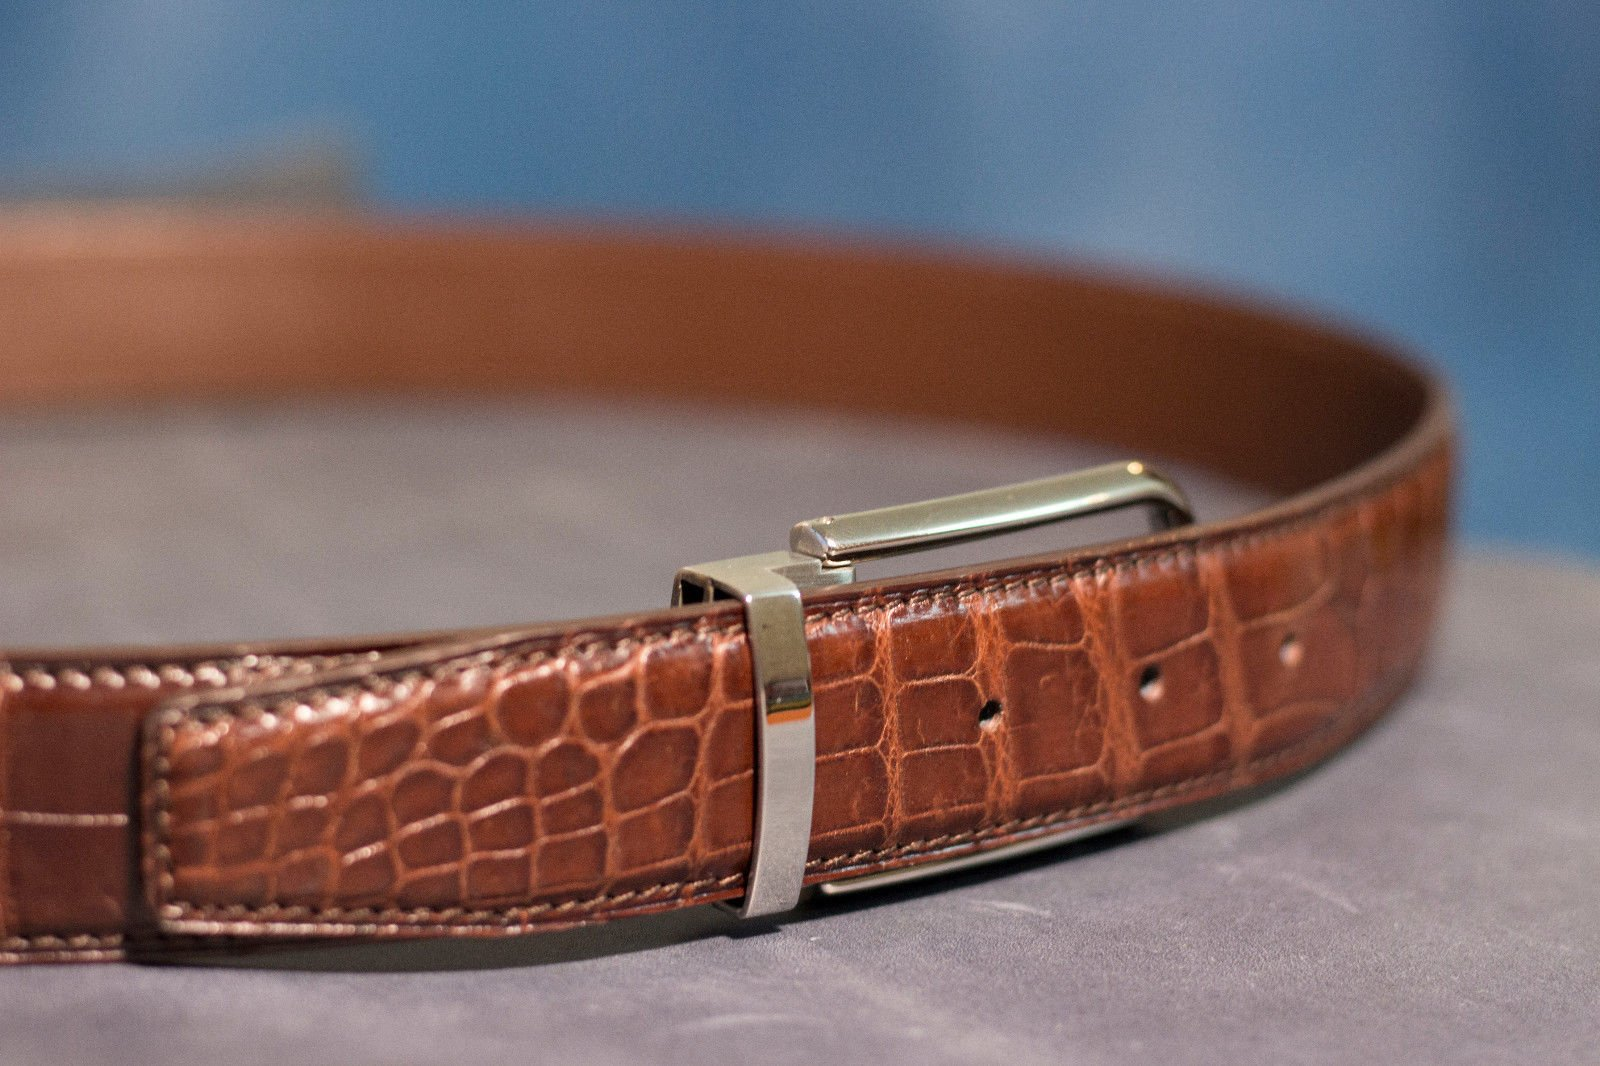 Genuine Crocodile Leather Belt - Without Buckle